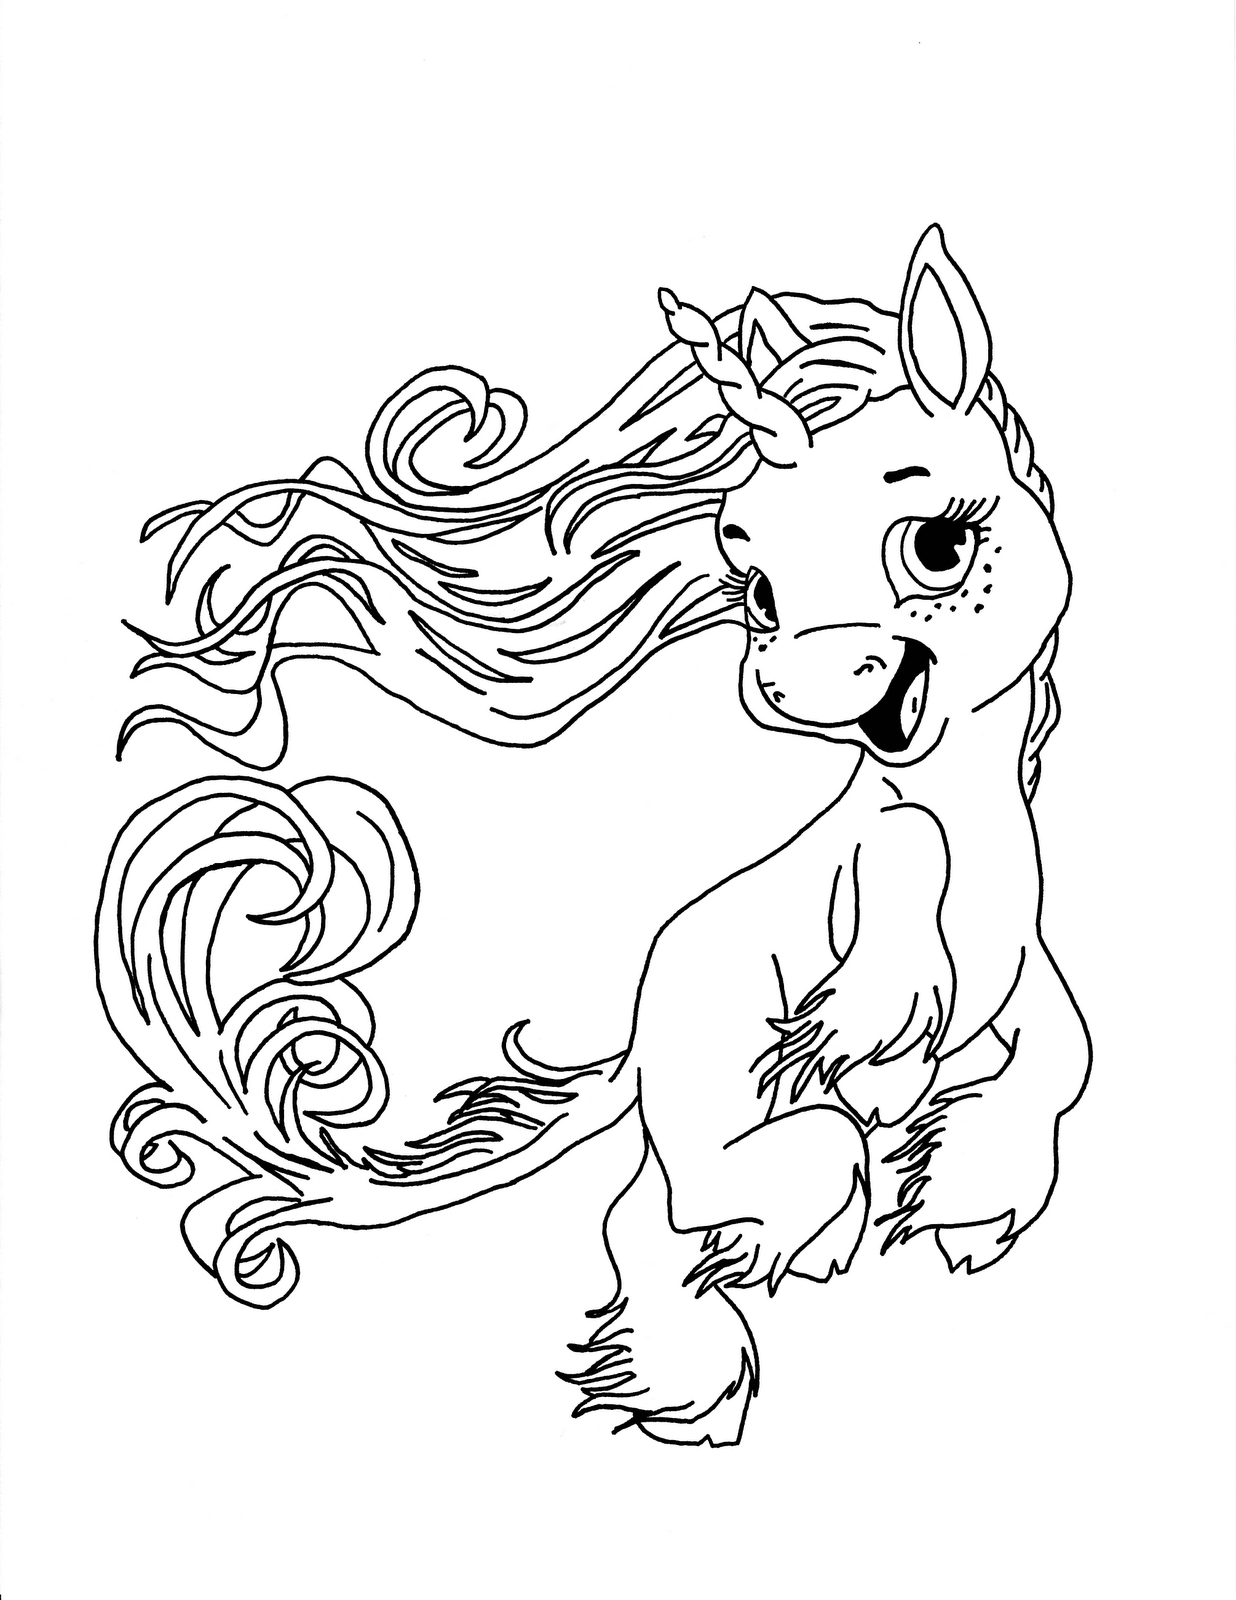 1236x1600 Best Of Despicable Me Unicorn Coloring Page Despicable Me Coloring